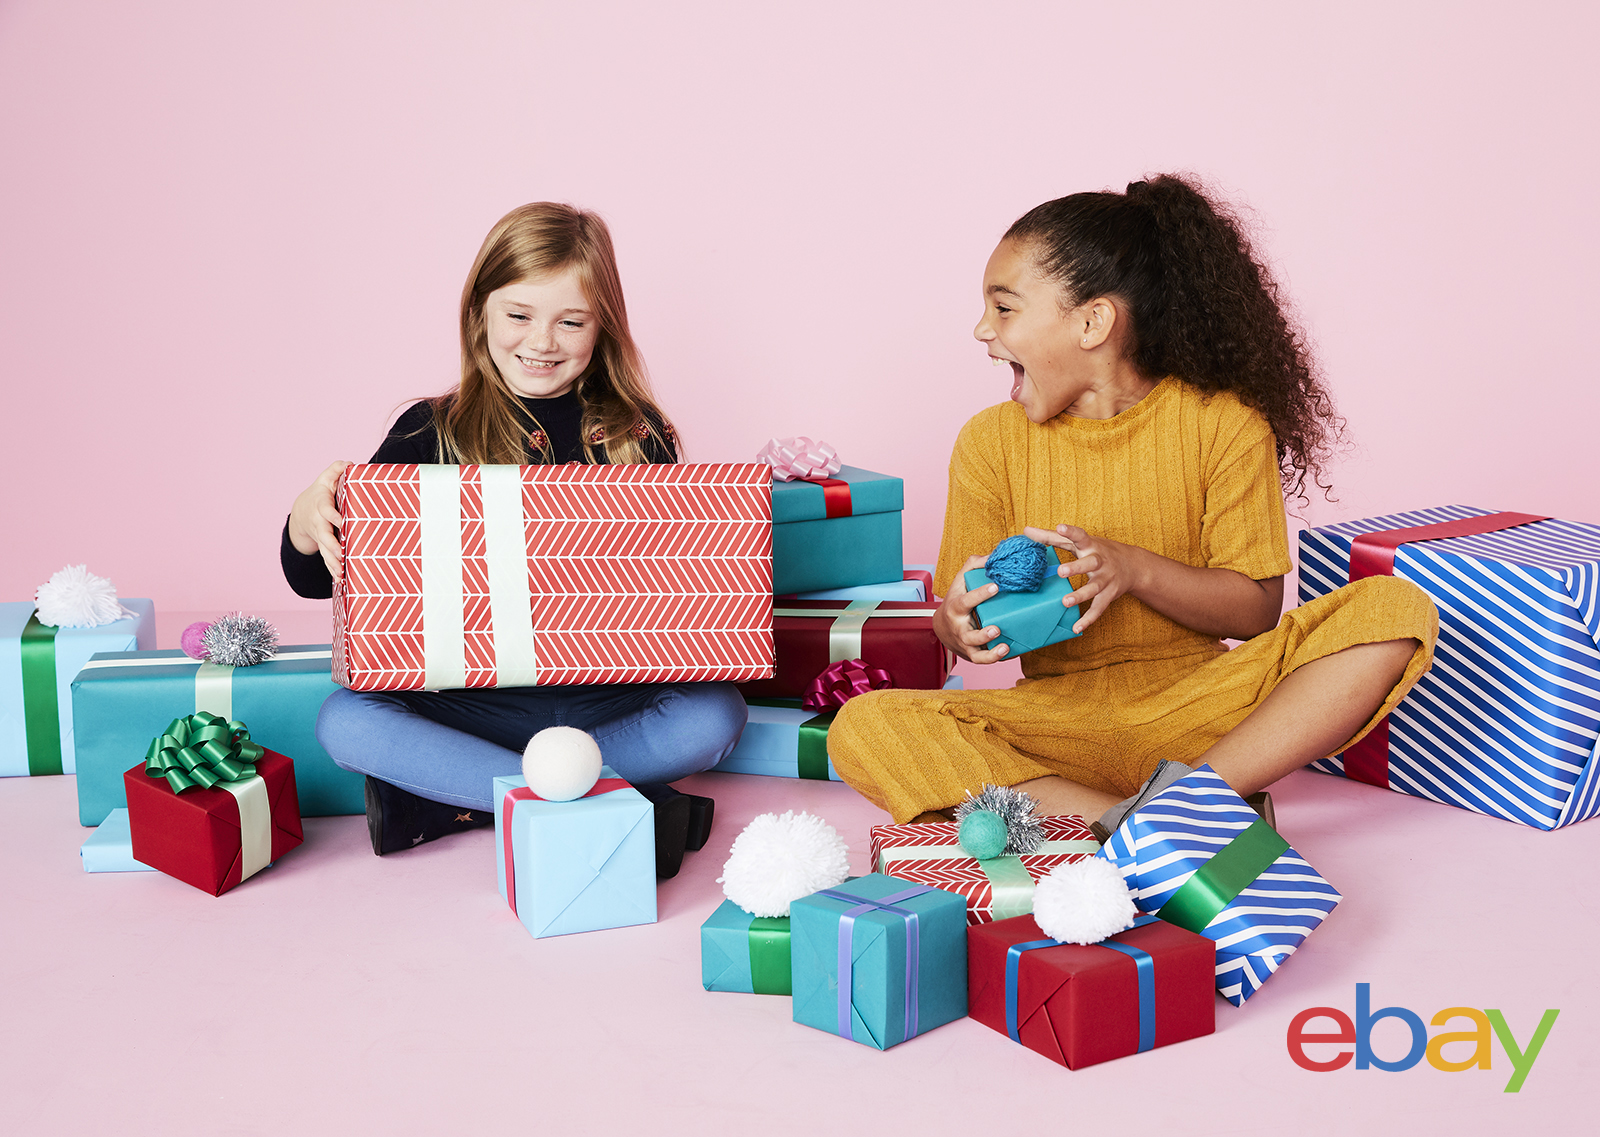 Holiday18_Toys_Kids_Moment_Colored_Wall_2477 copy copy.jpg